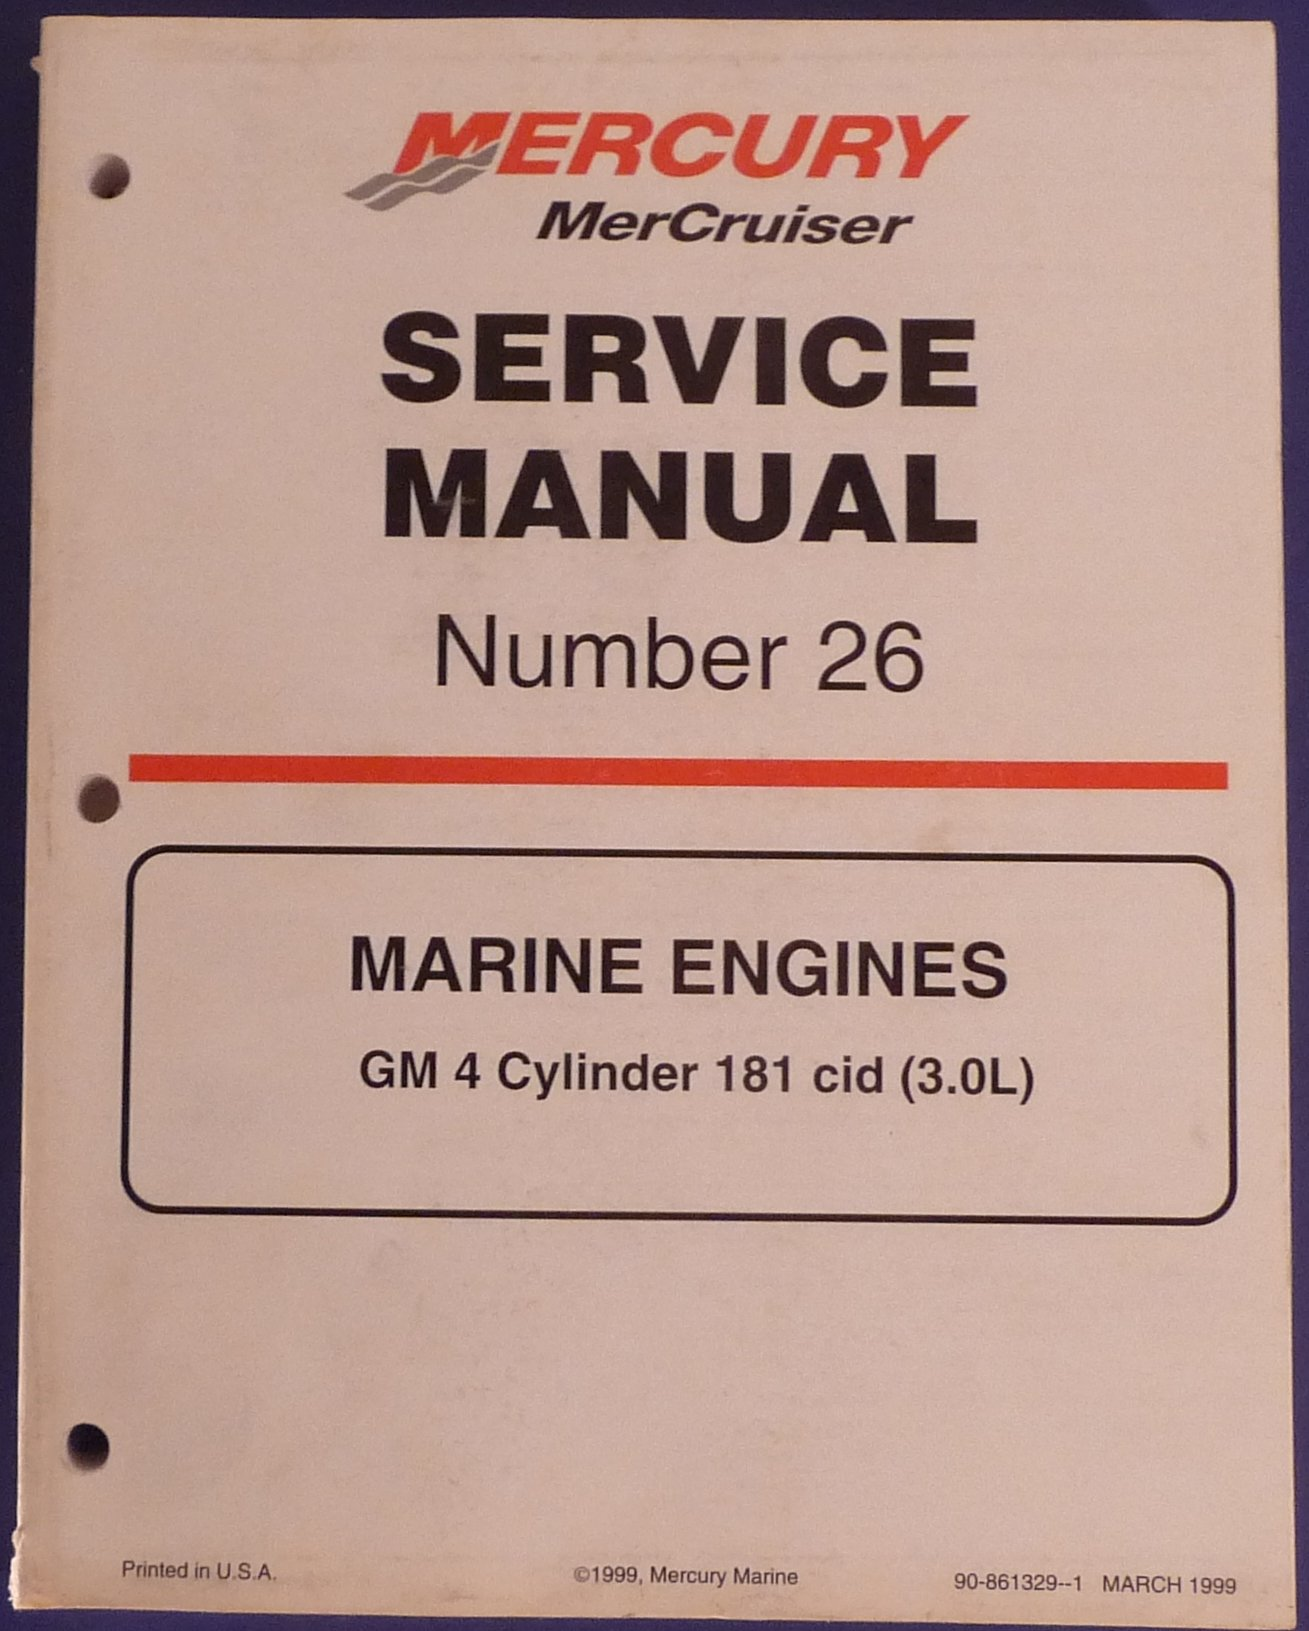 Mercury Mercruiser Service Manual. Number 26. Marine Engines Gm 4 Cylinder  181 Cid (3.0l)1999: Amazon.com: Books